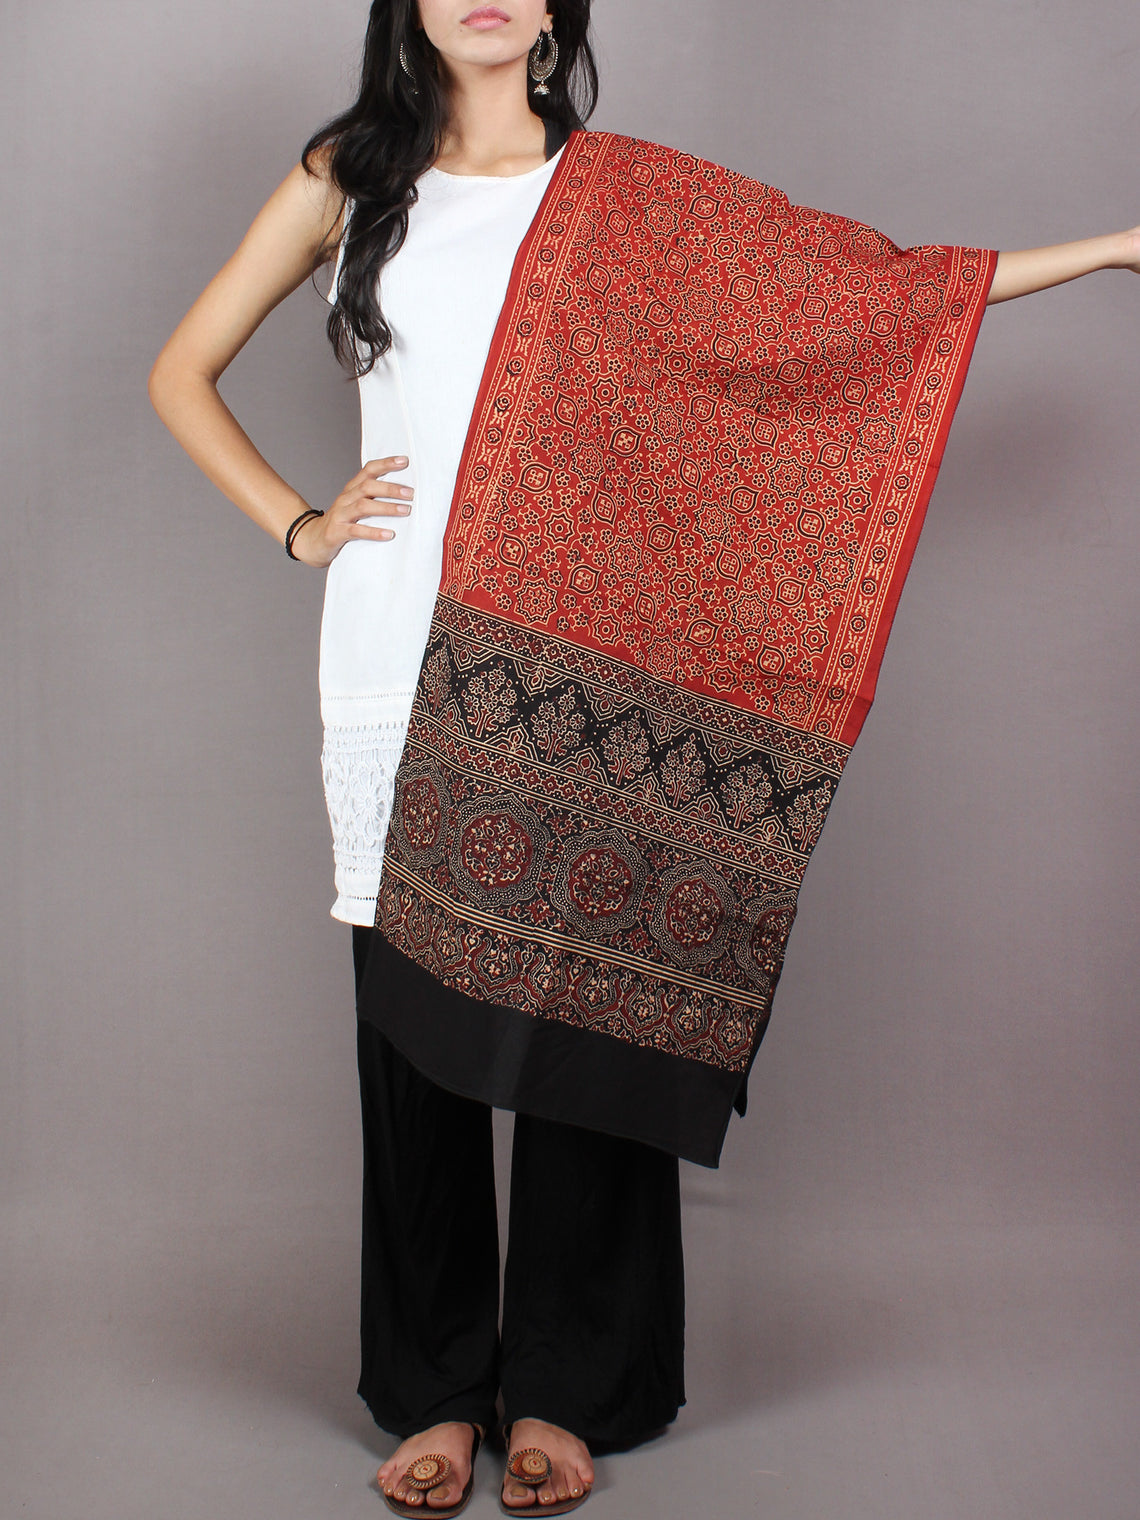 Red Black Mughal Nakashi Ajrakh Hand Block Printed Cotton Stole - S6317053